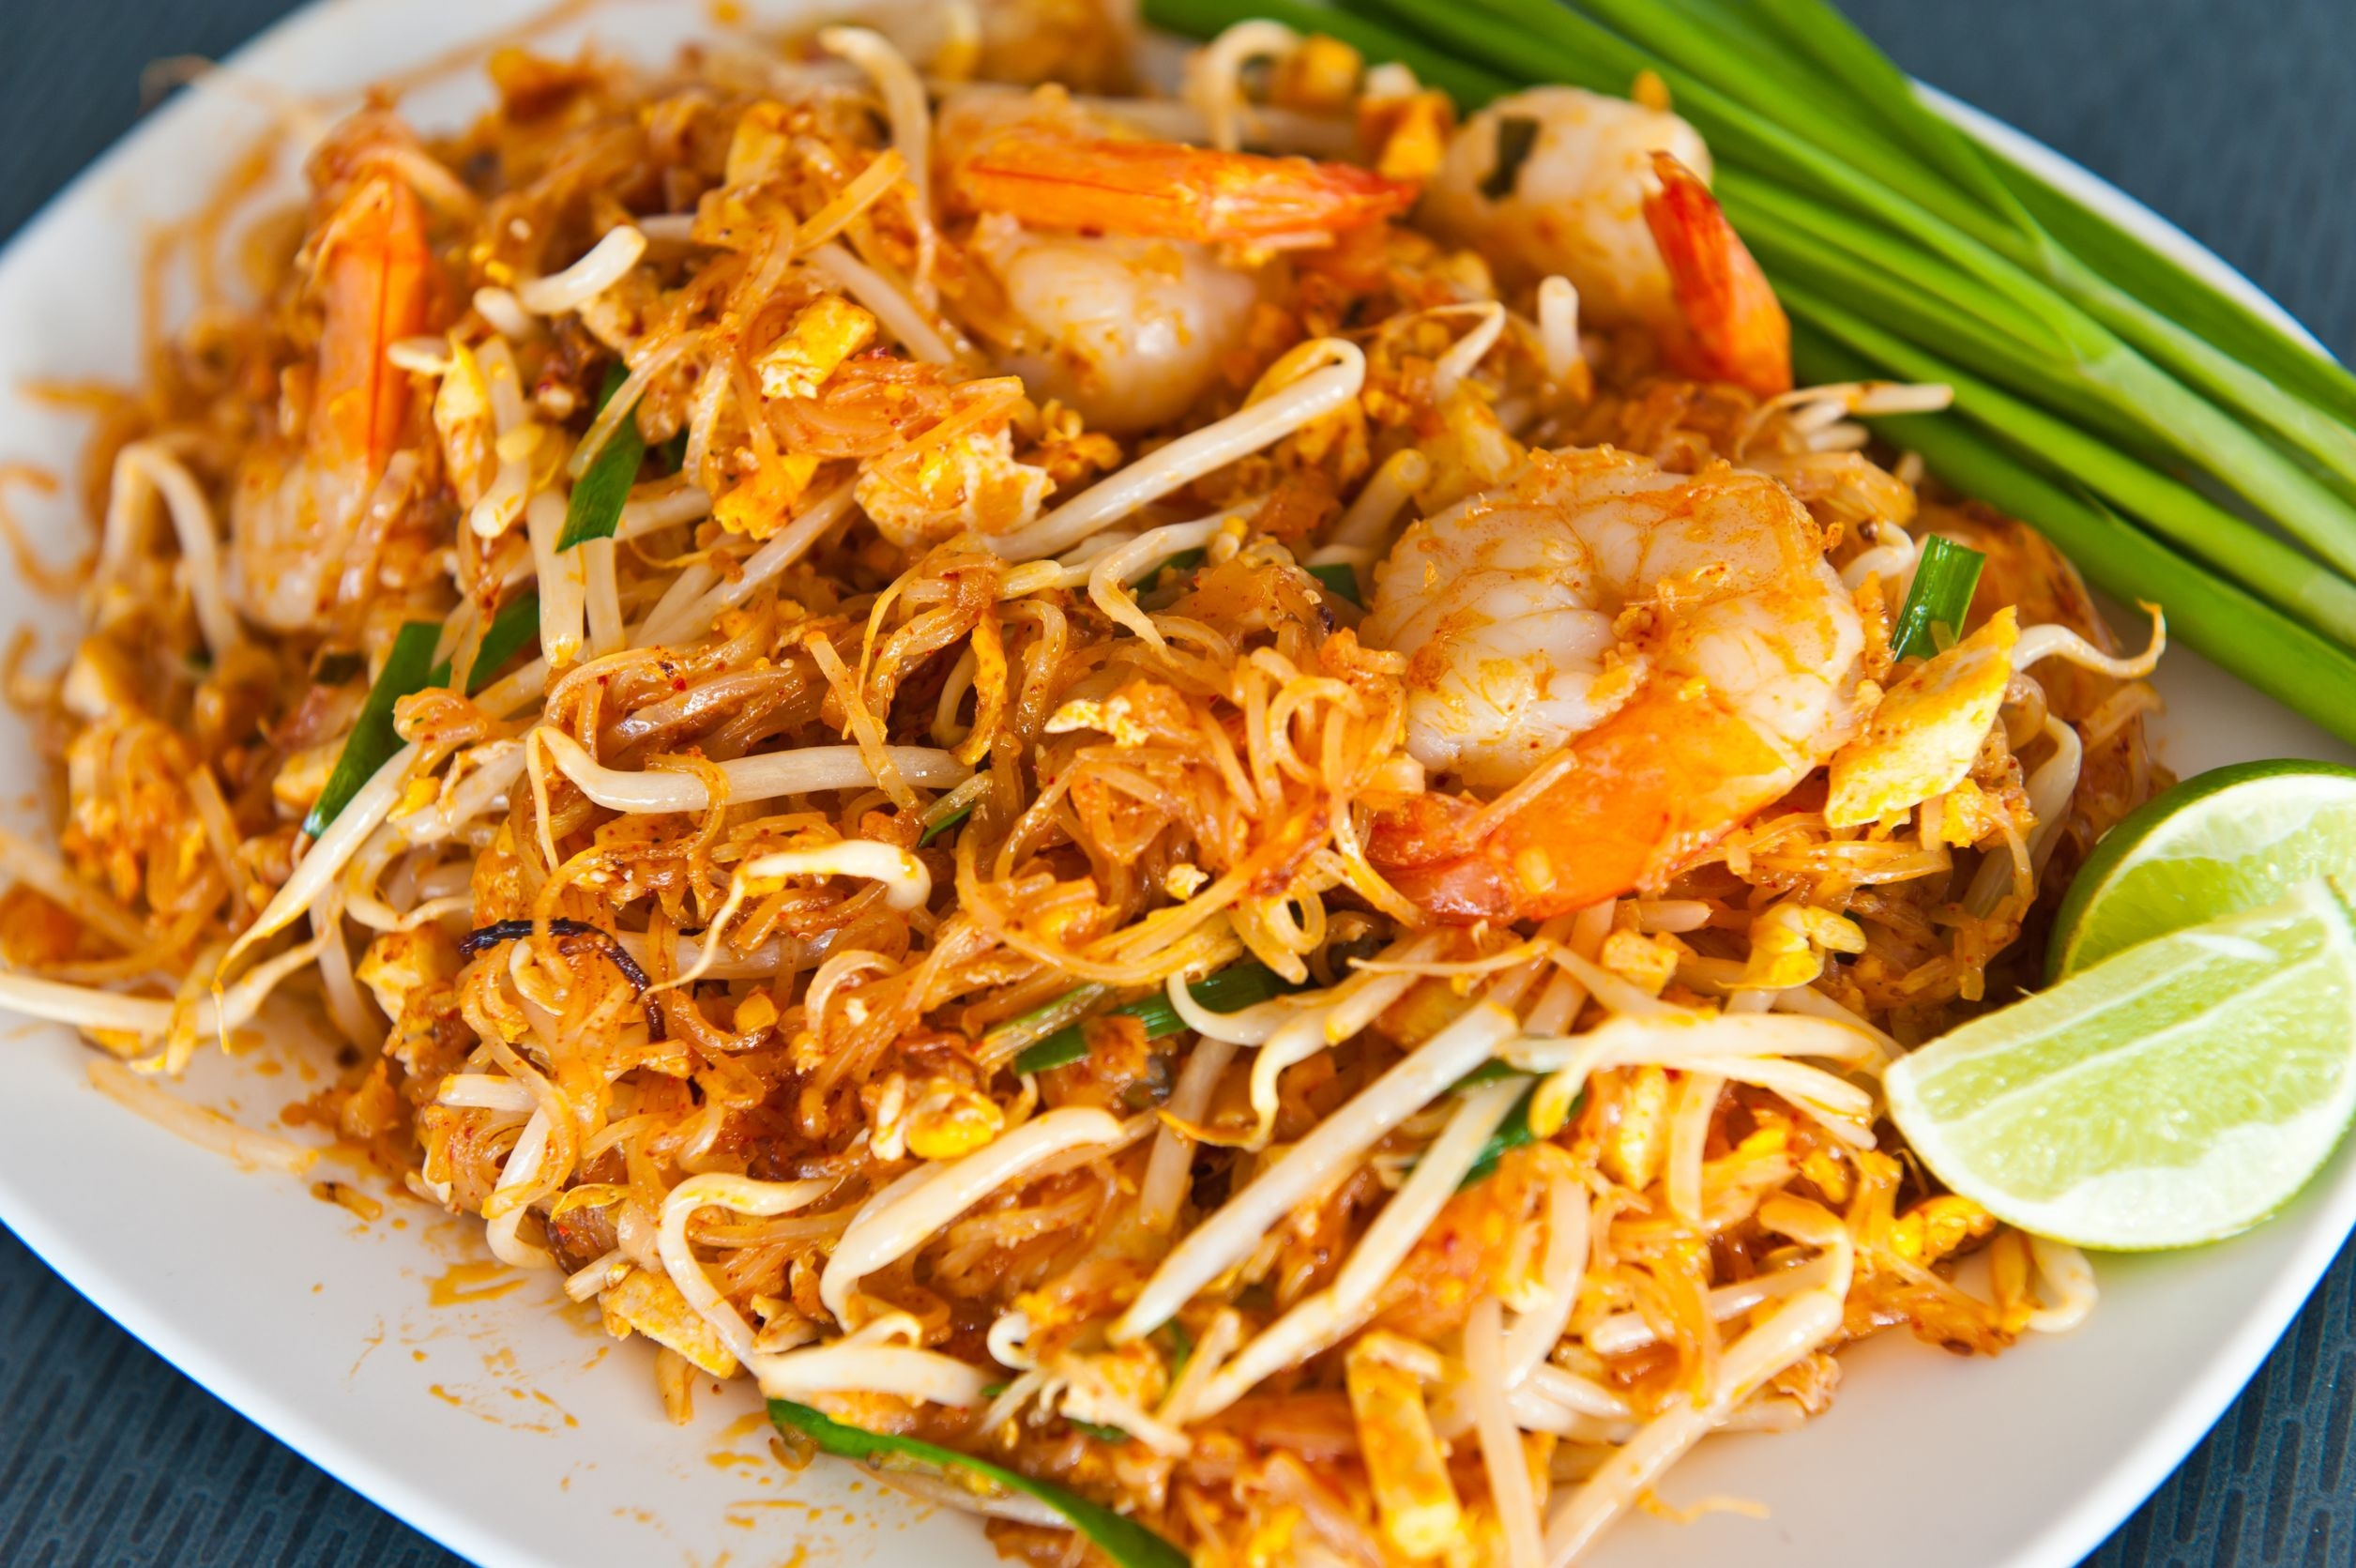 Thai Restaurants - TOP 5 in Durban - Explore Durban & KZN